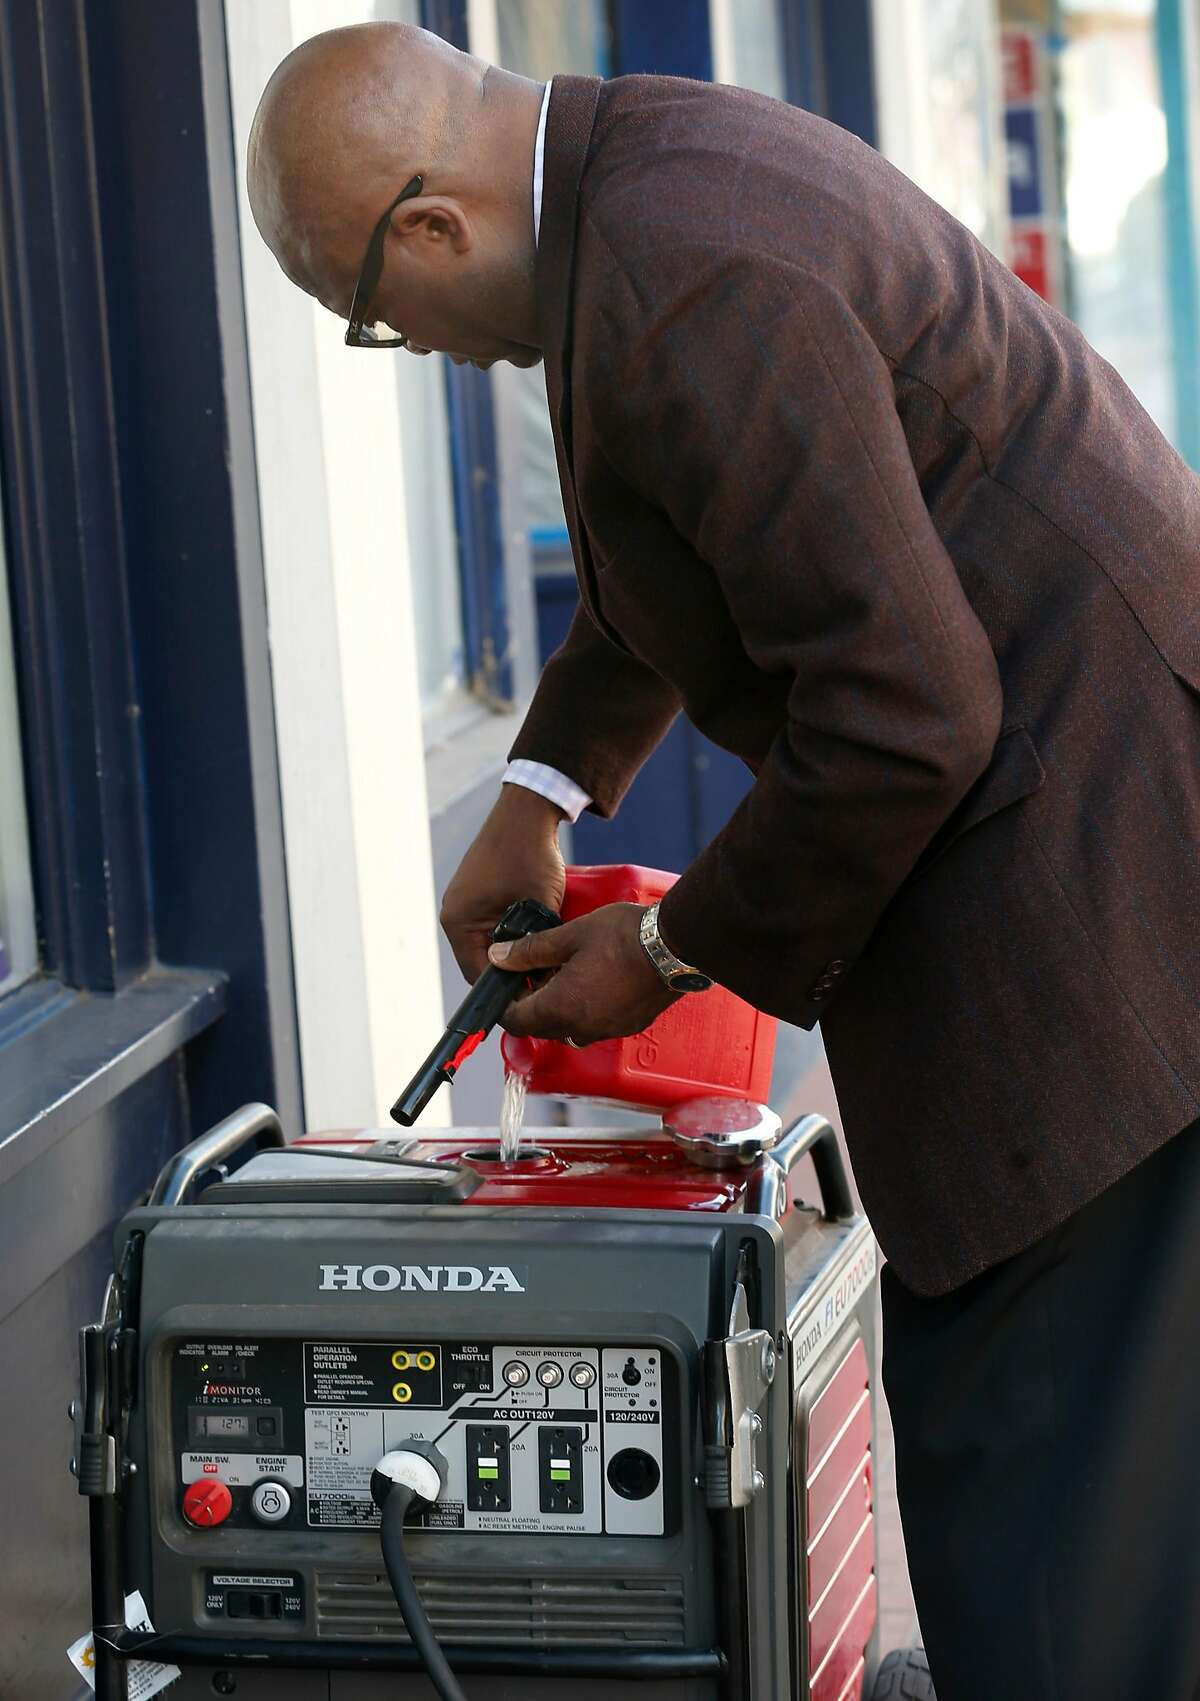 Capital City Pharmacy owner Arthur Metu fills a rented portable generator with gasoline on Georgia Street as the public safety power shutoff issued by PG&E continues for a third consecutive day in Vallejo, Calif. on Tuesday, Oct. 29, 2019. Metu had to drive all the way to Livermore to pick up the generator, the closest location he could find.